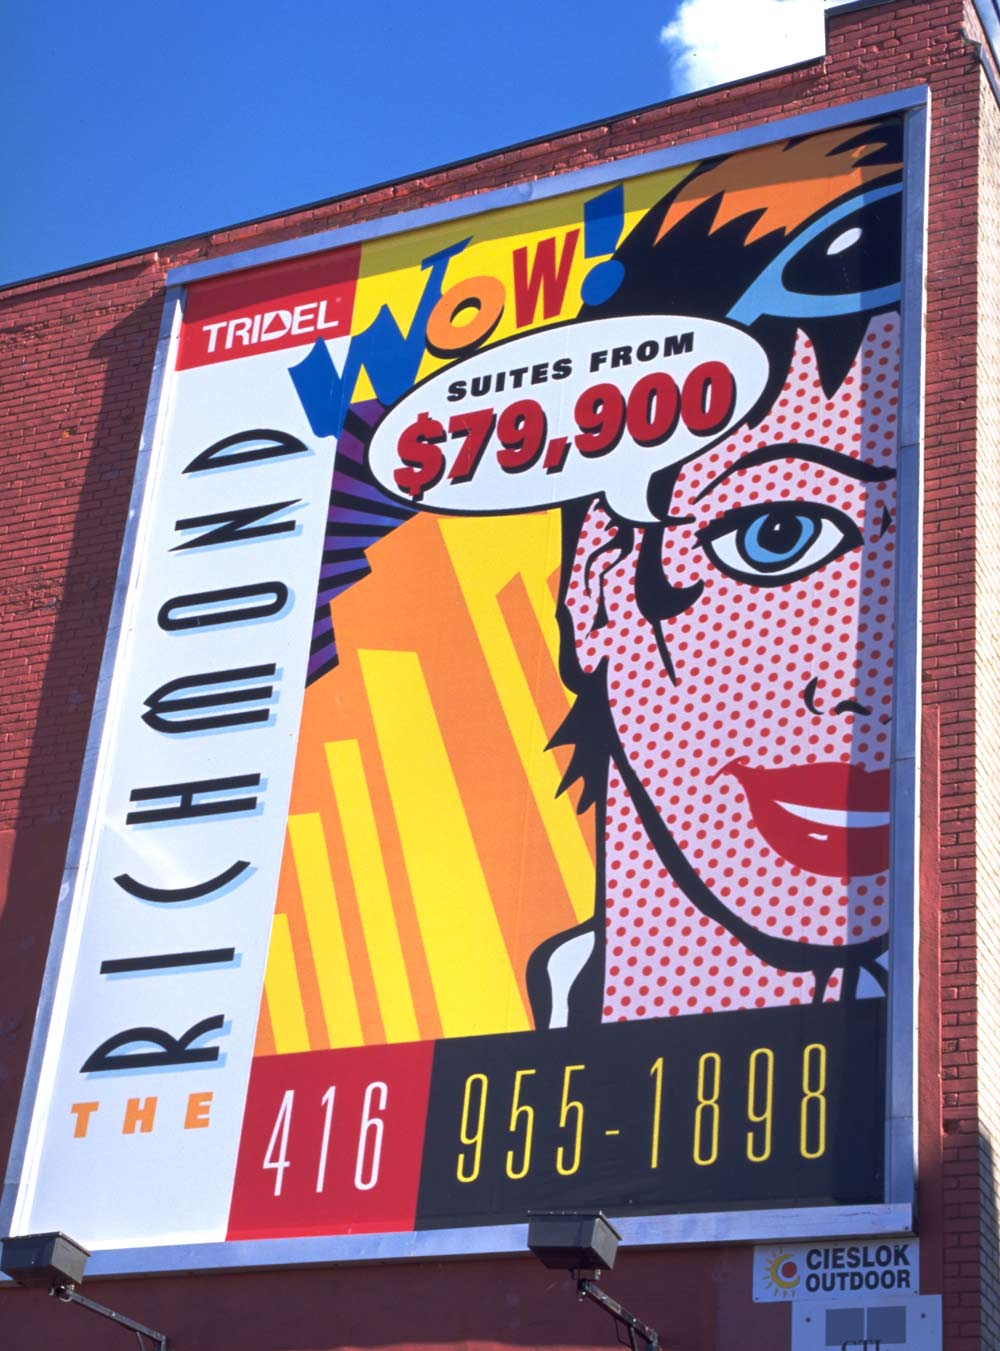 Billboard: The Richmond, Tridel